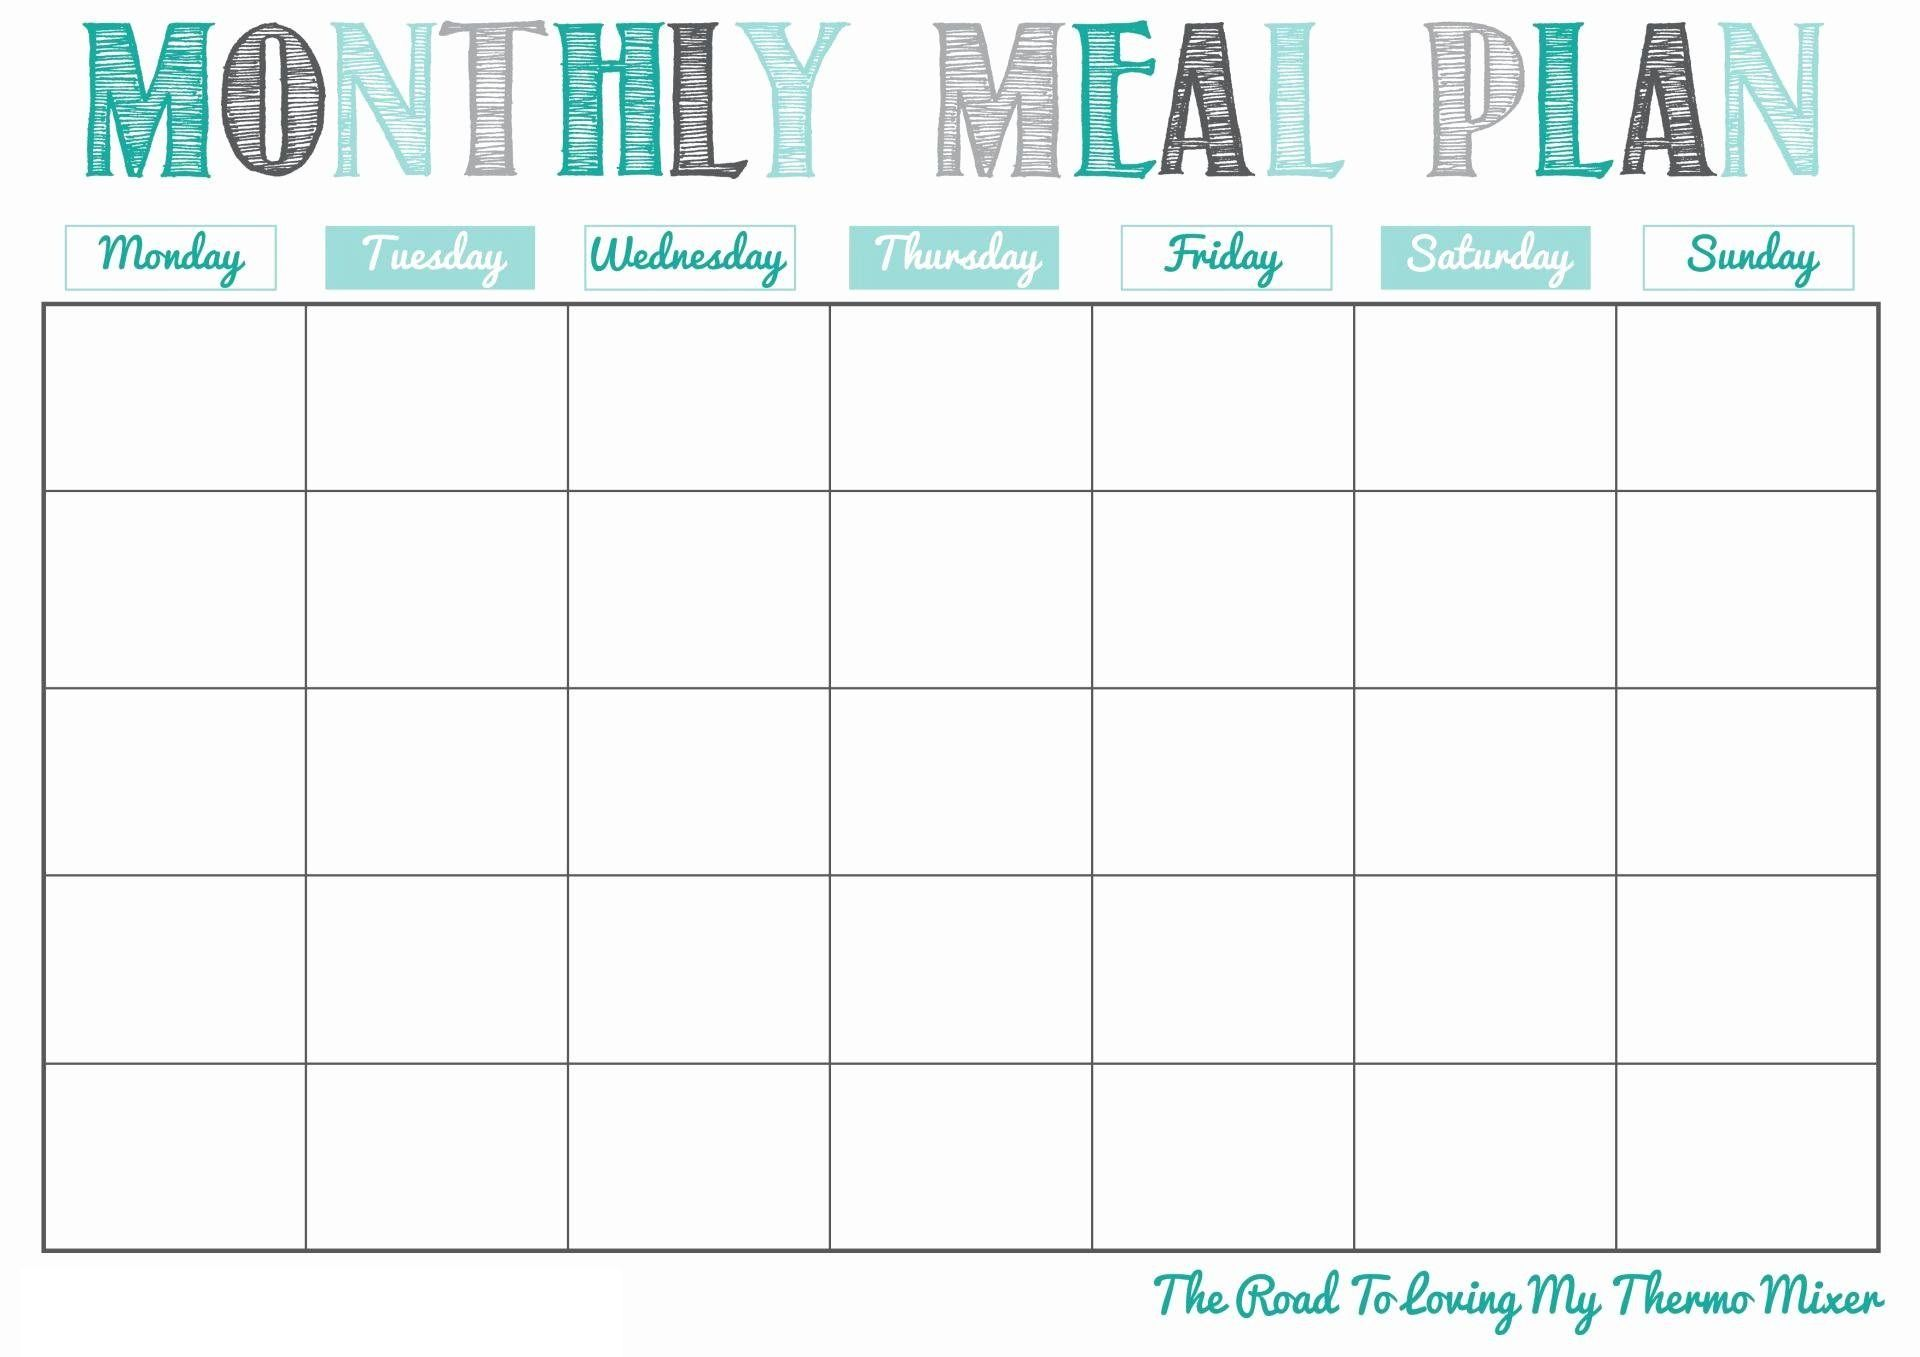 Monthly Calendar Template Monthly Meal Planner Meal Planning